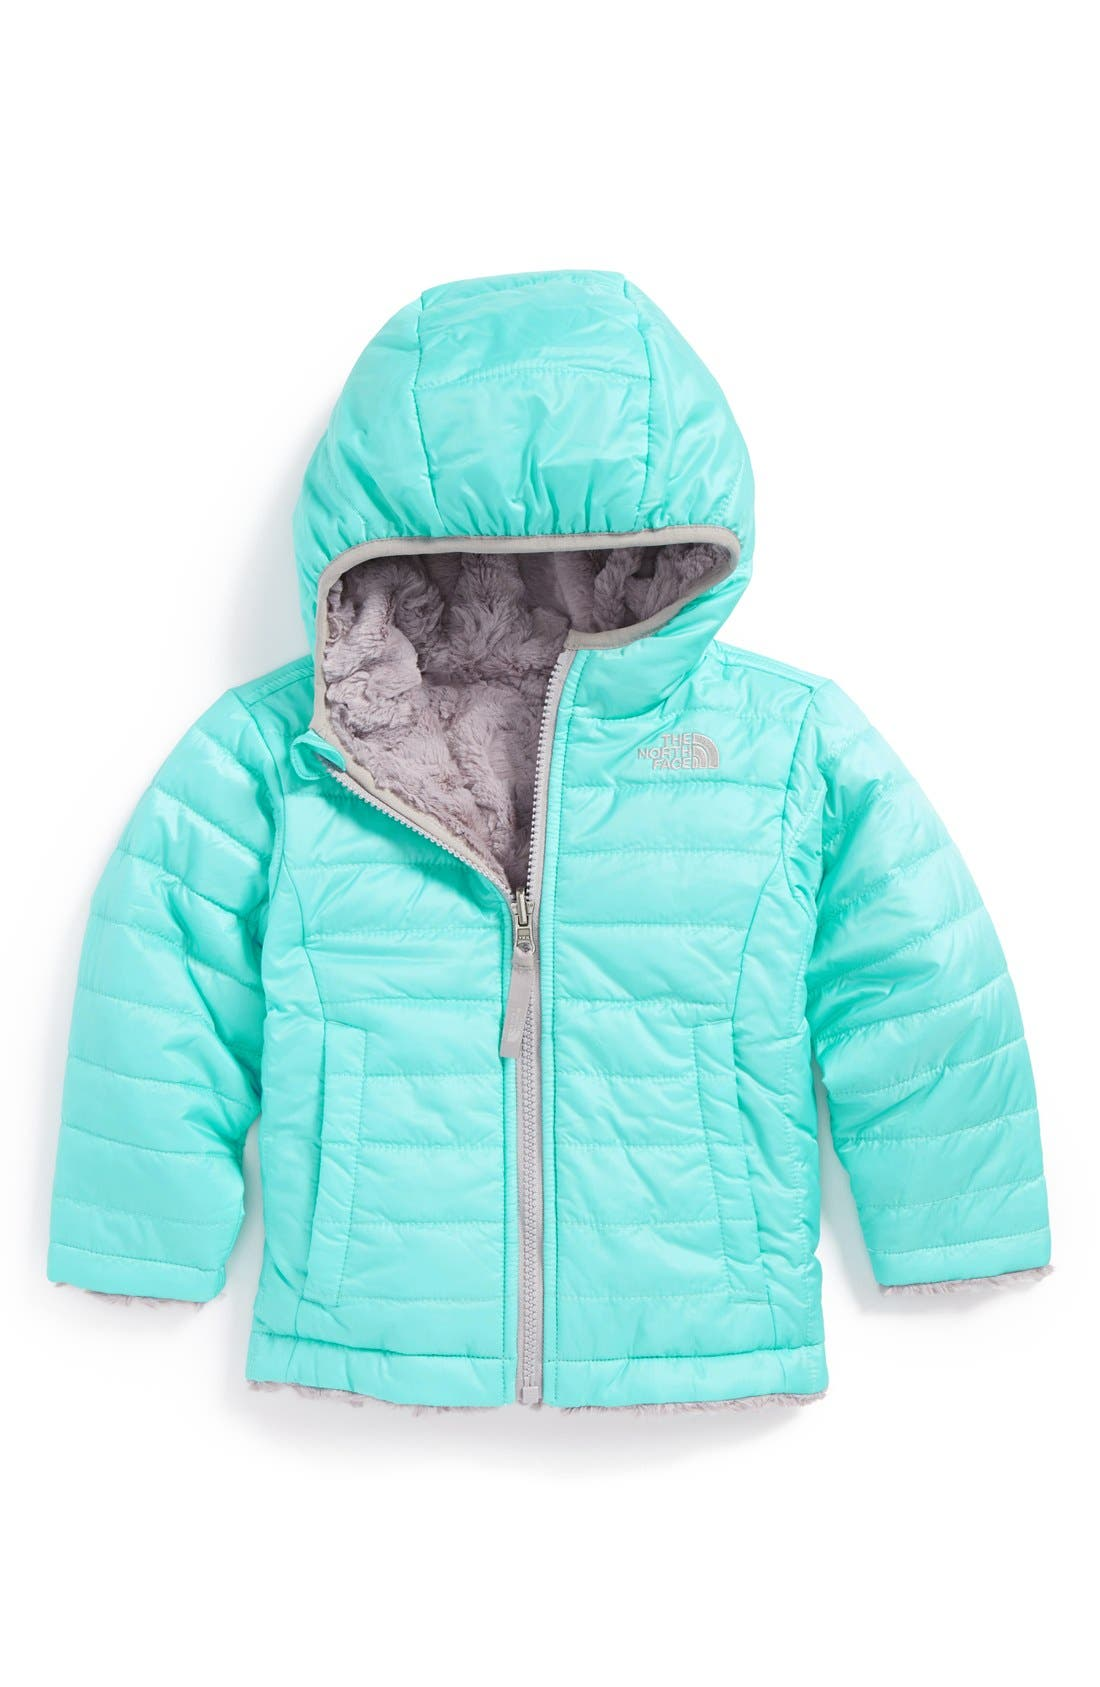 Alternate Image 1 Selected - The North Face Mossbud Swirl Water Repellent Reversible Jacket (Toddler Girls)